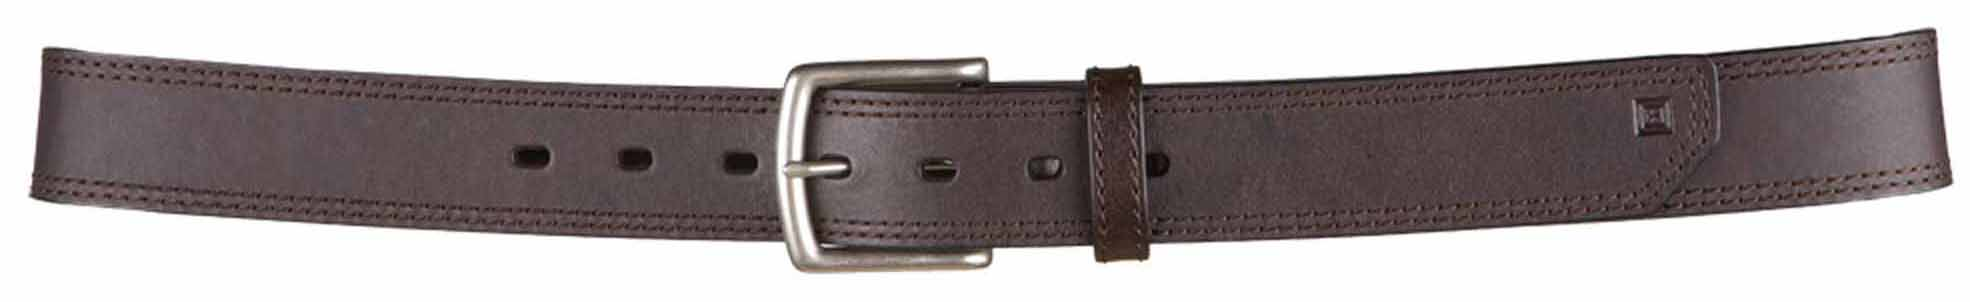 5 11 tactical arc leather belt sheplers